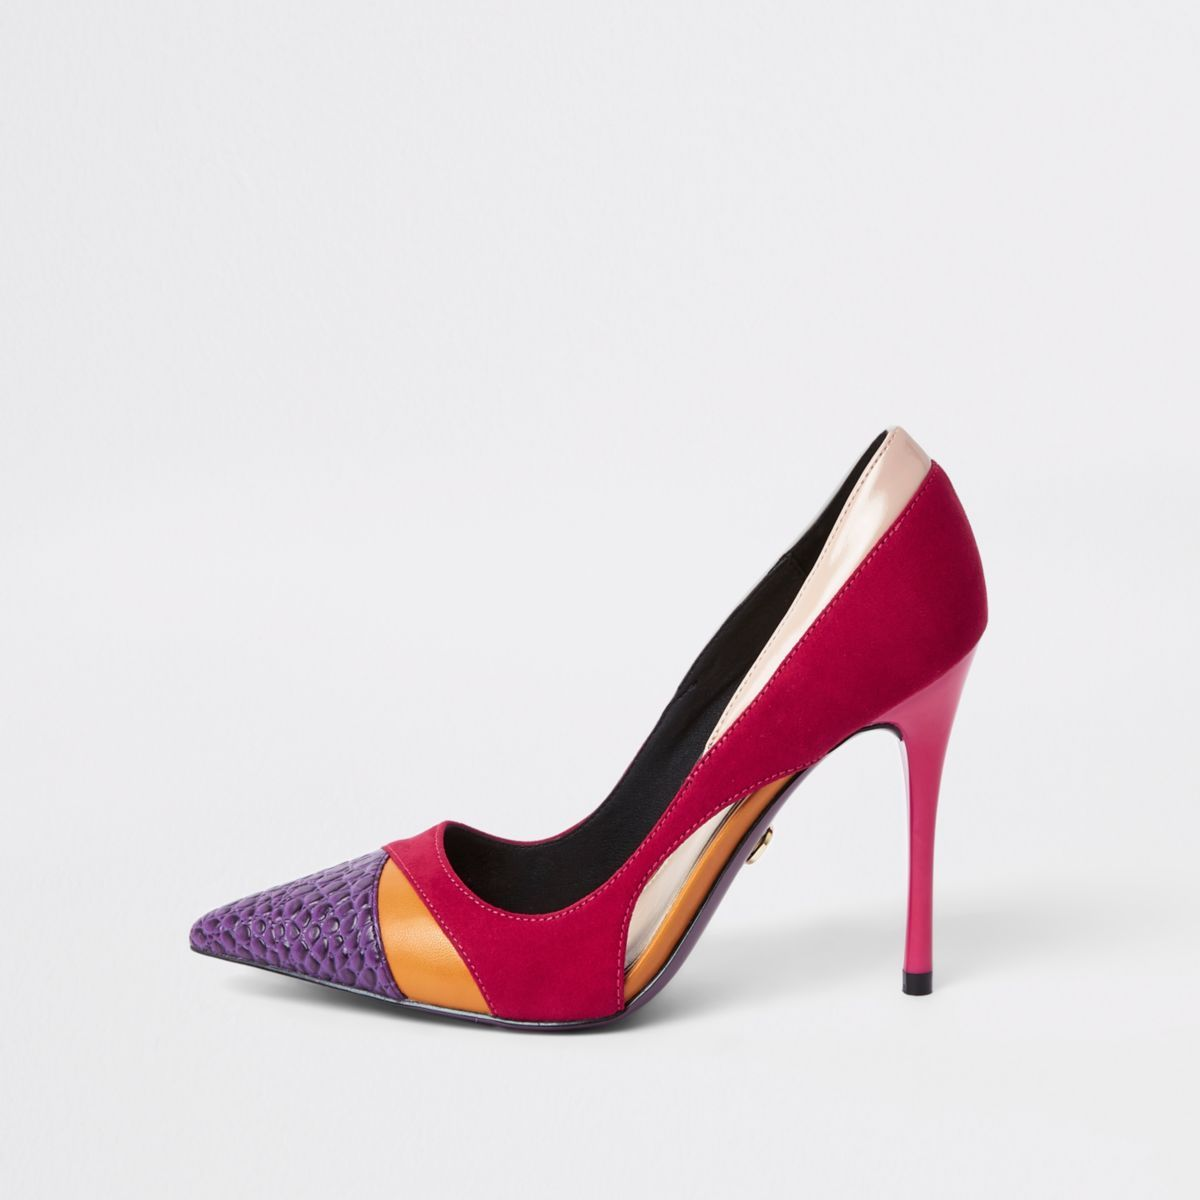 Red bottoms | Prom heels, Sparkle shoes, Fashion heels